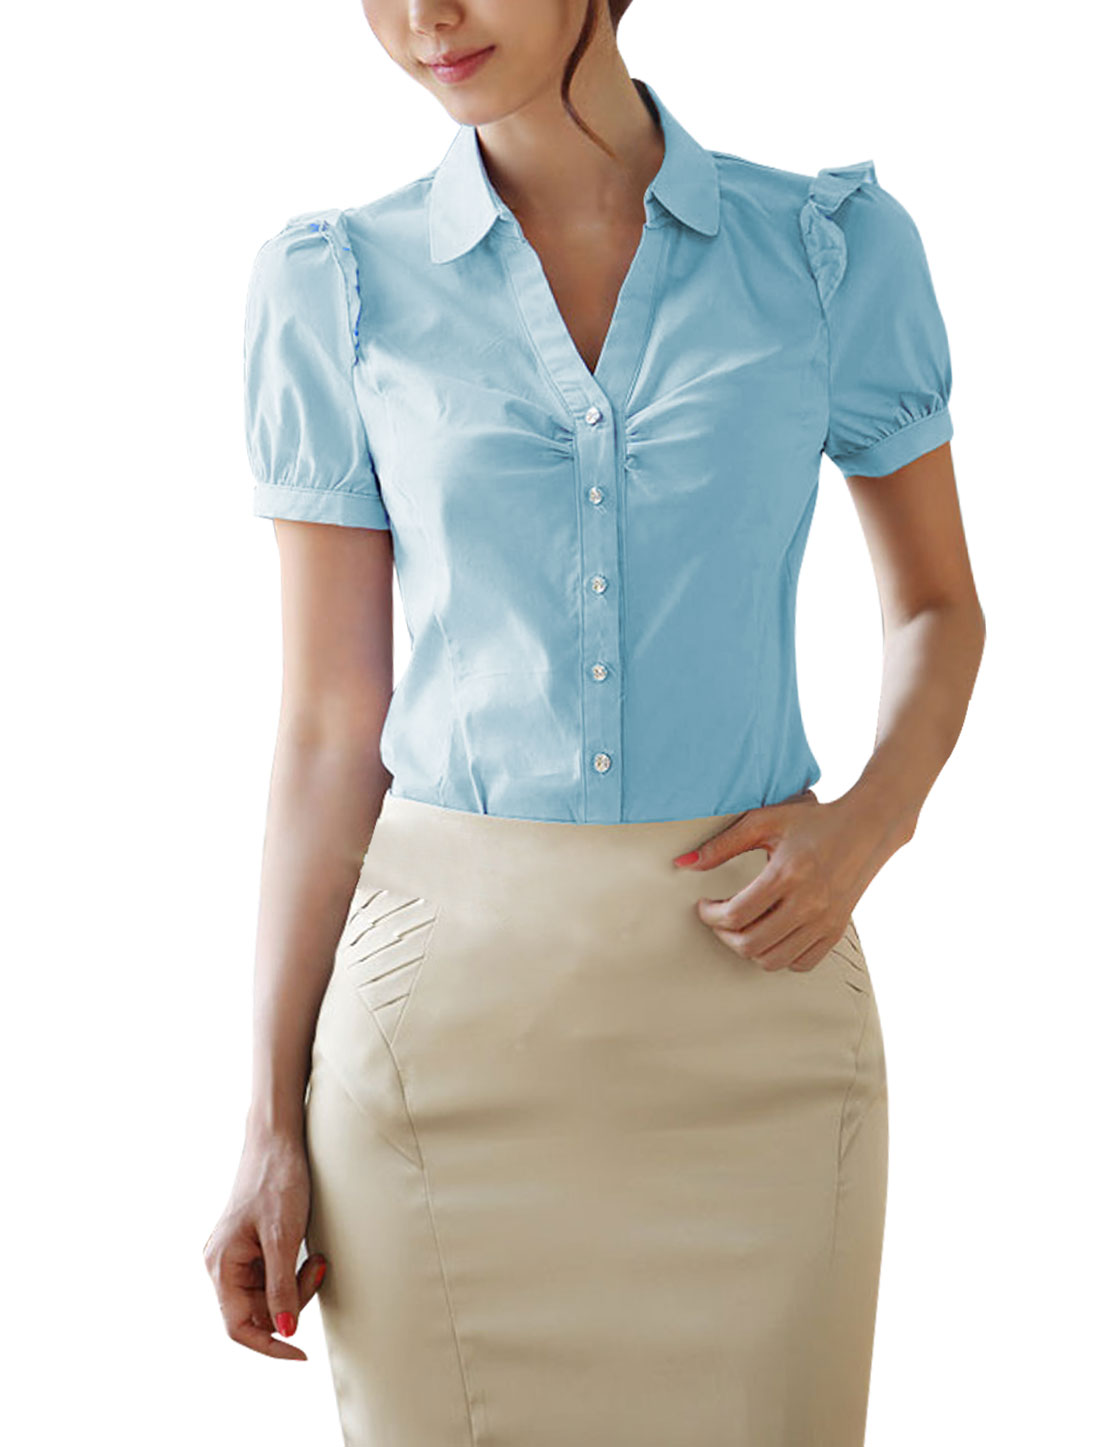 M Blue Point Collar Solid Color Slim Fit Style Fashion Shirt for Ladies